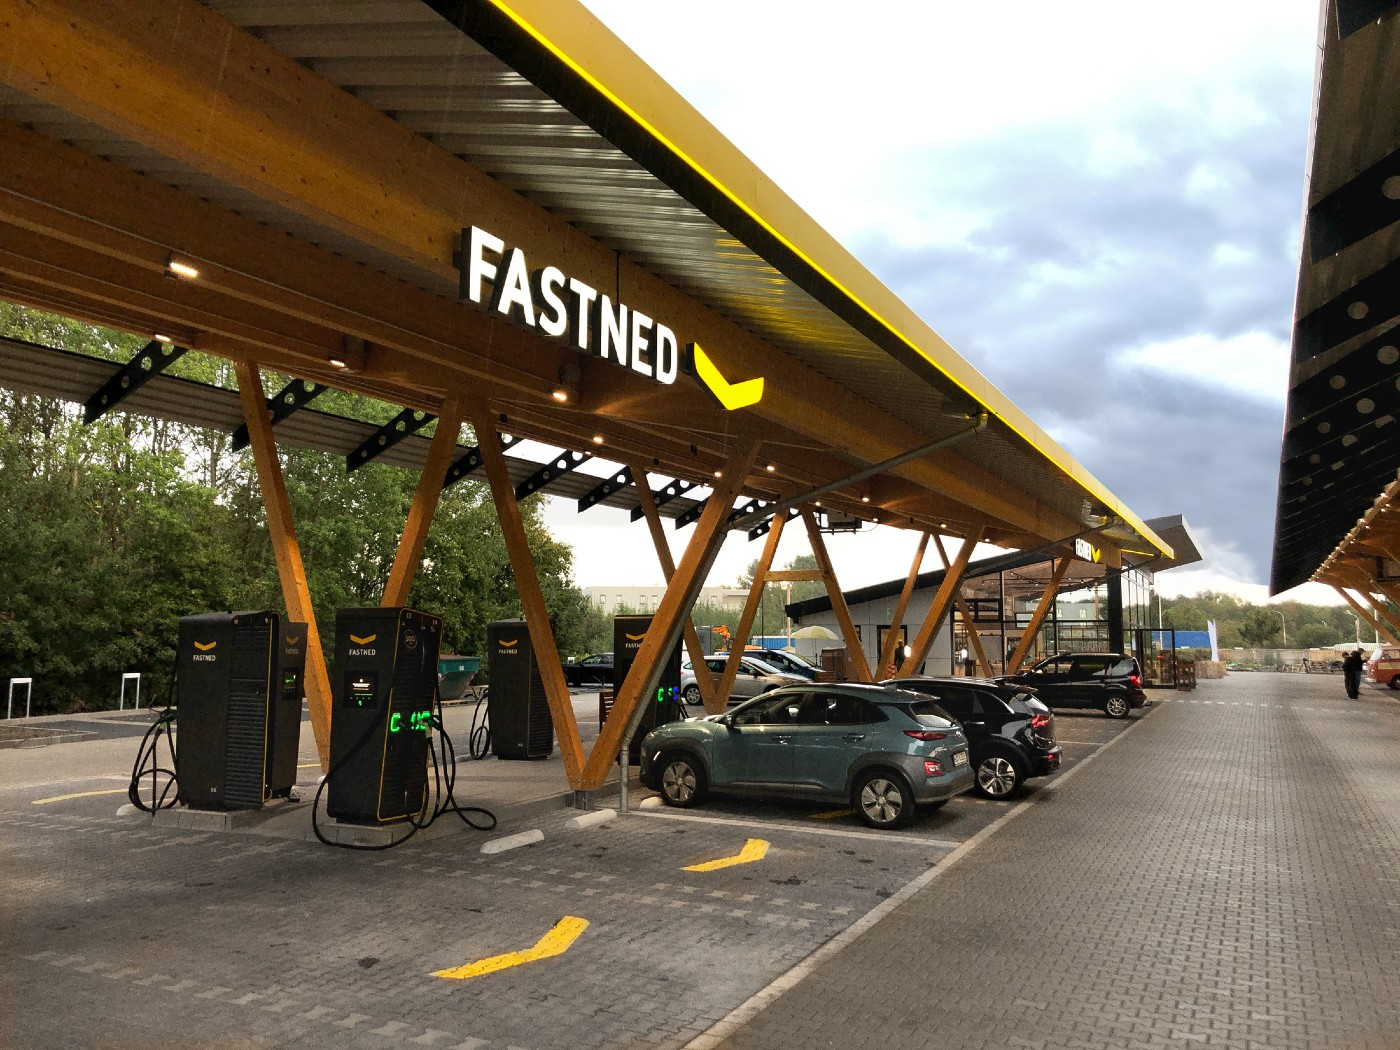 Tesla opens solar and wind-powered fast charging hub in Germany with Fastned